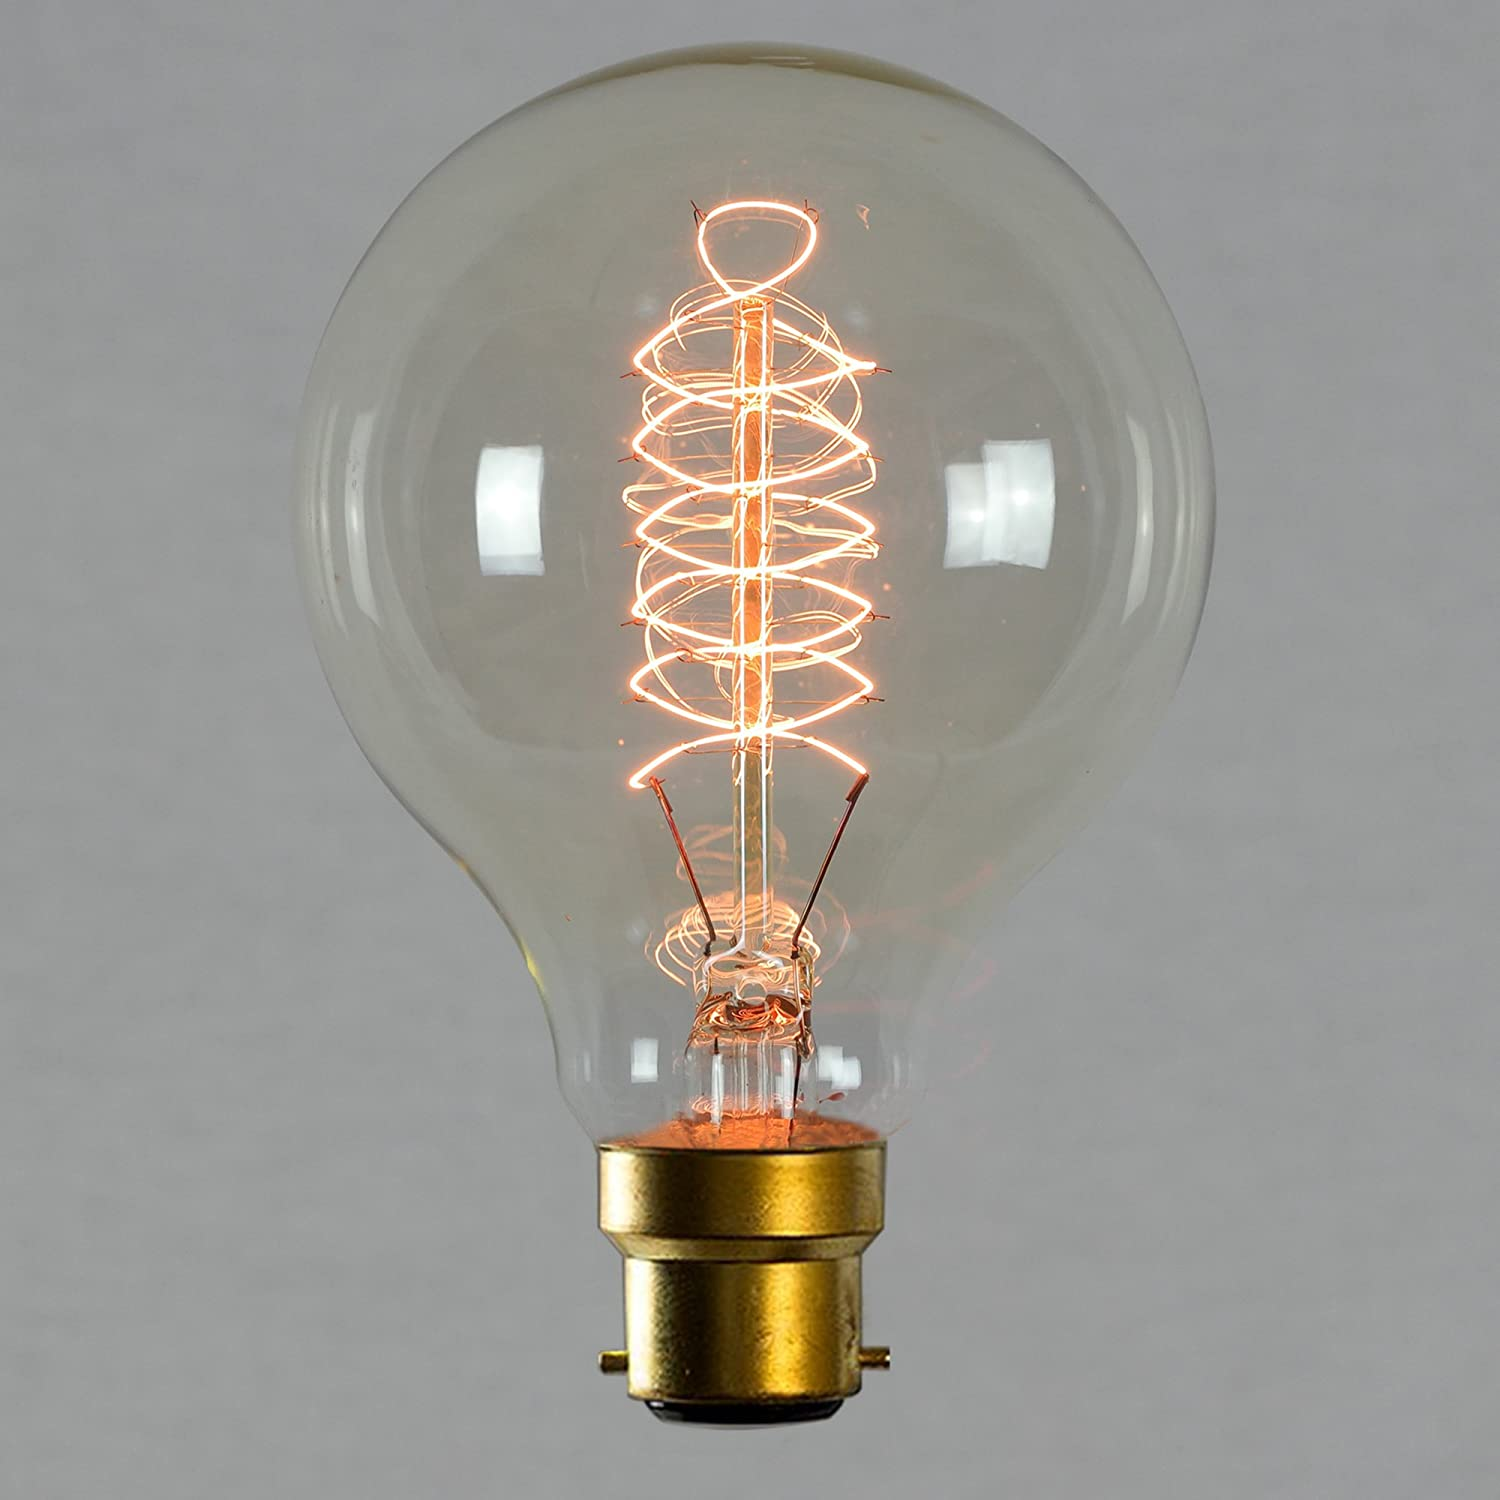 Vintage Edison Light Bulb 60w - Spiral Globe 80mm B22 BC Dimmable - The Retro Boutique ®